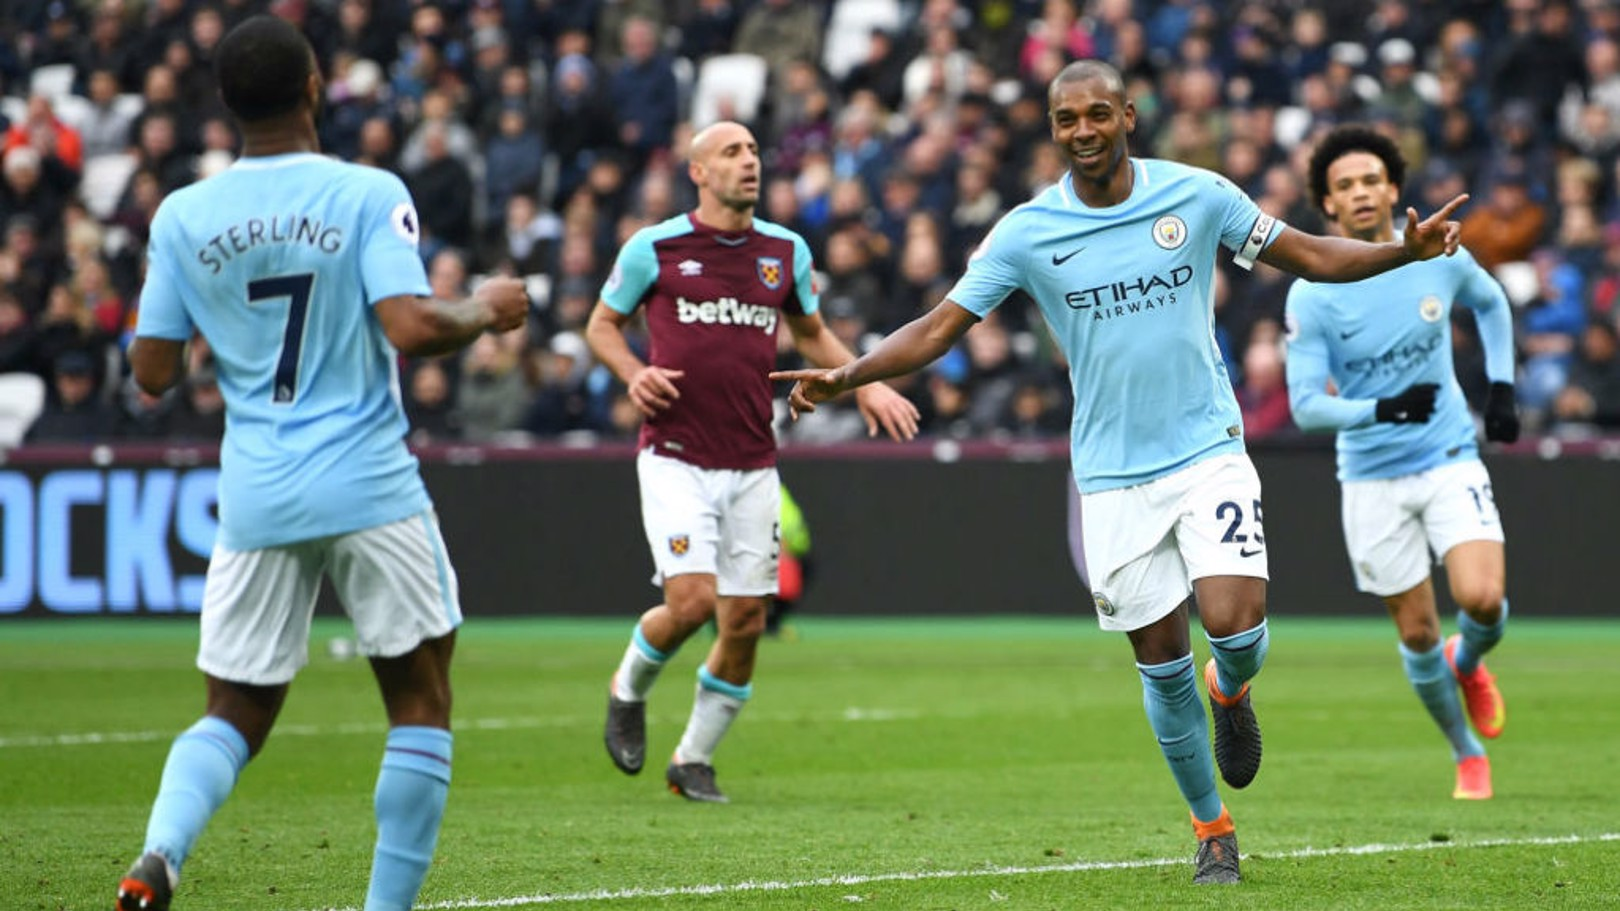 JUST CAPITAL: City ran out convincing 4-1 winners on our last appearance at the London Stadium in April this year